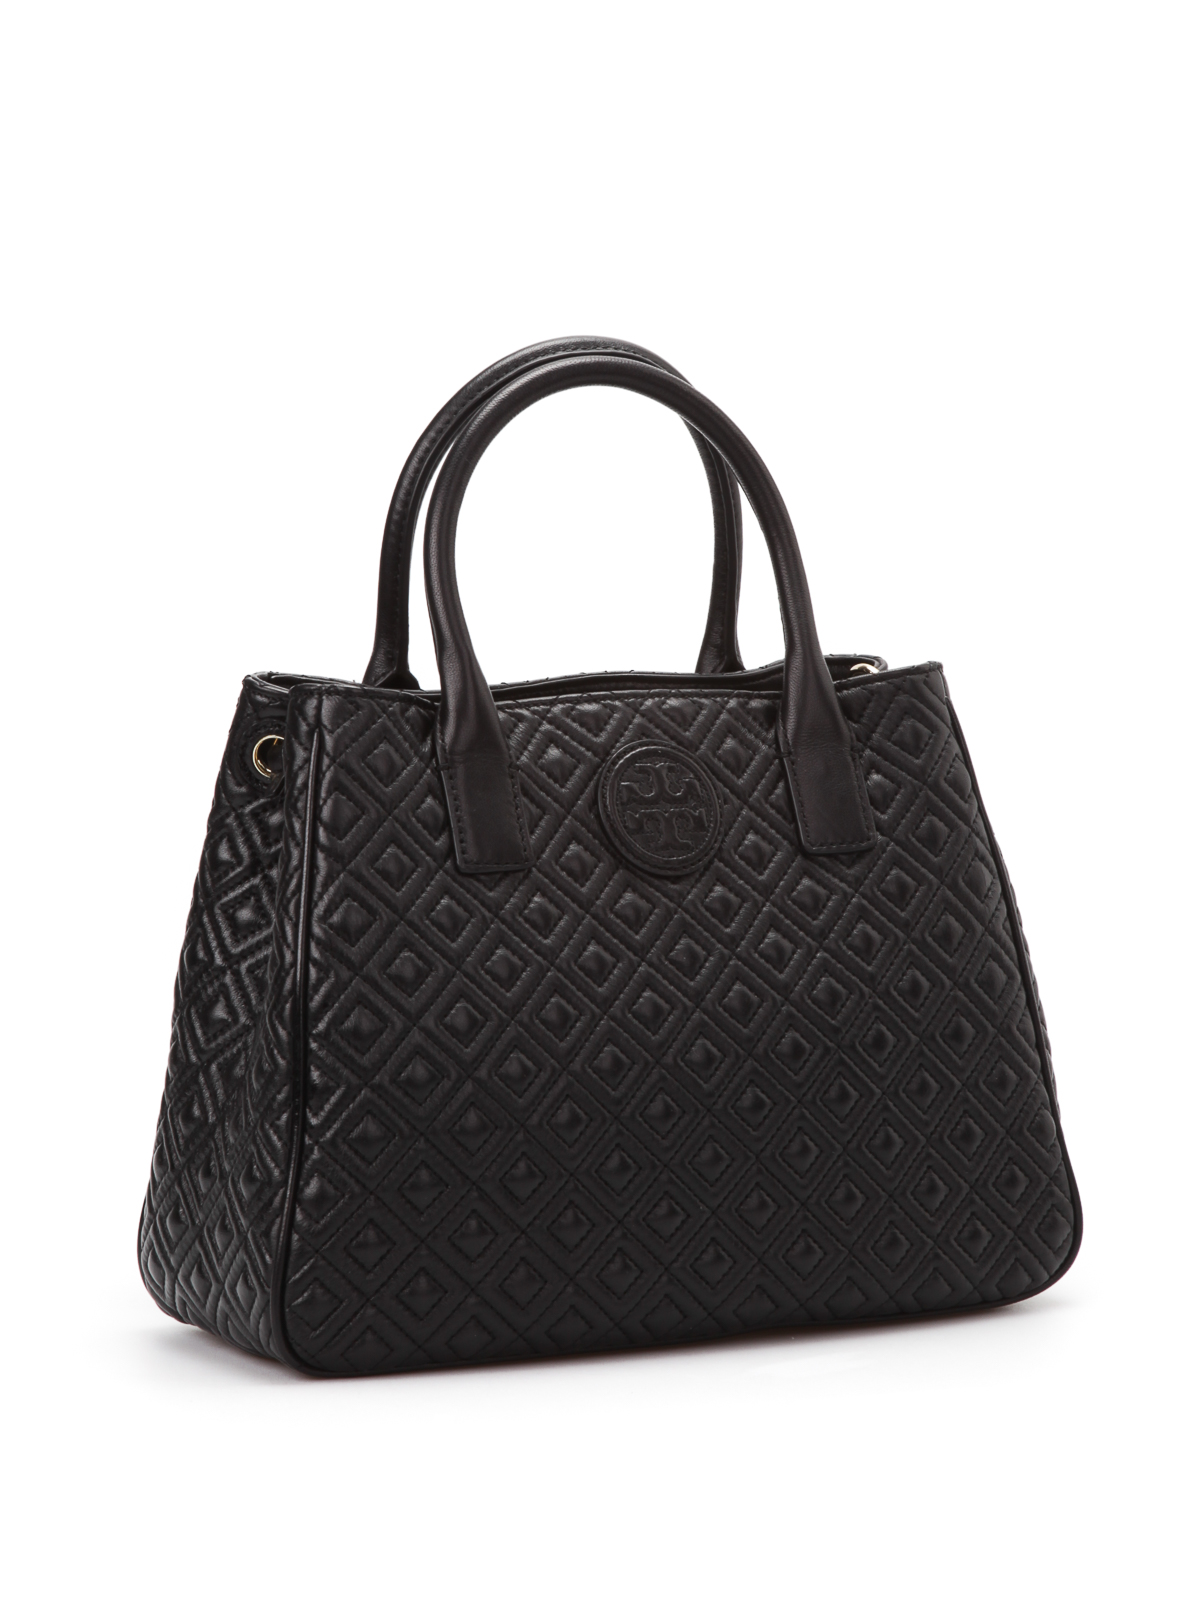 Tory Burch Marion Quilted Tote Totes Bags 31159724001 Ikrix